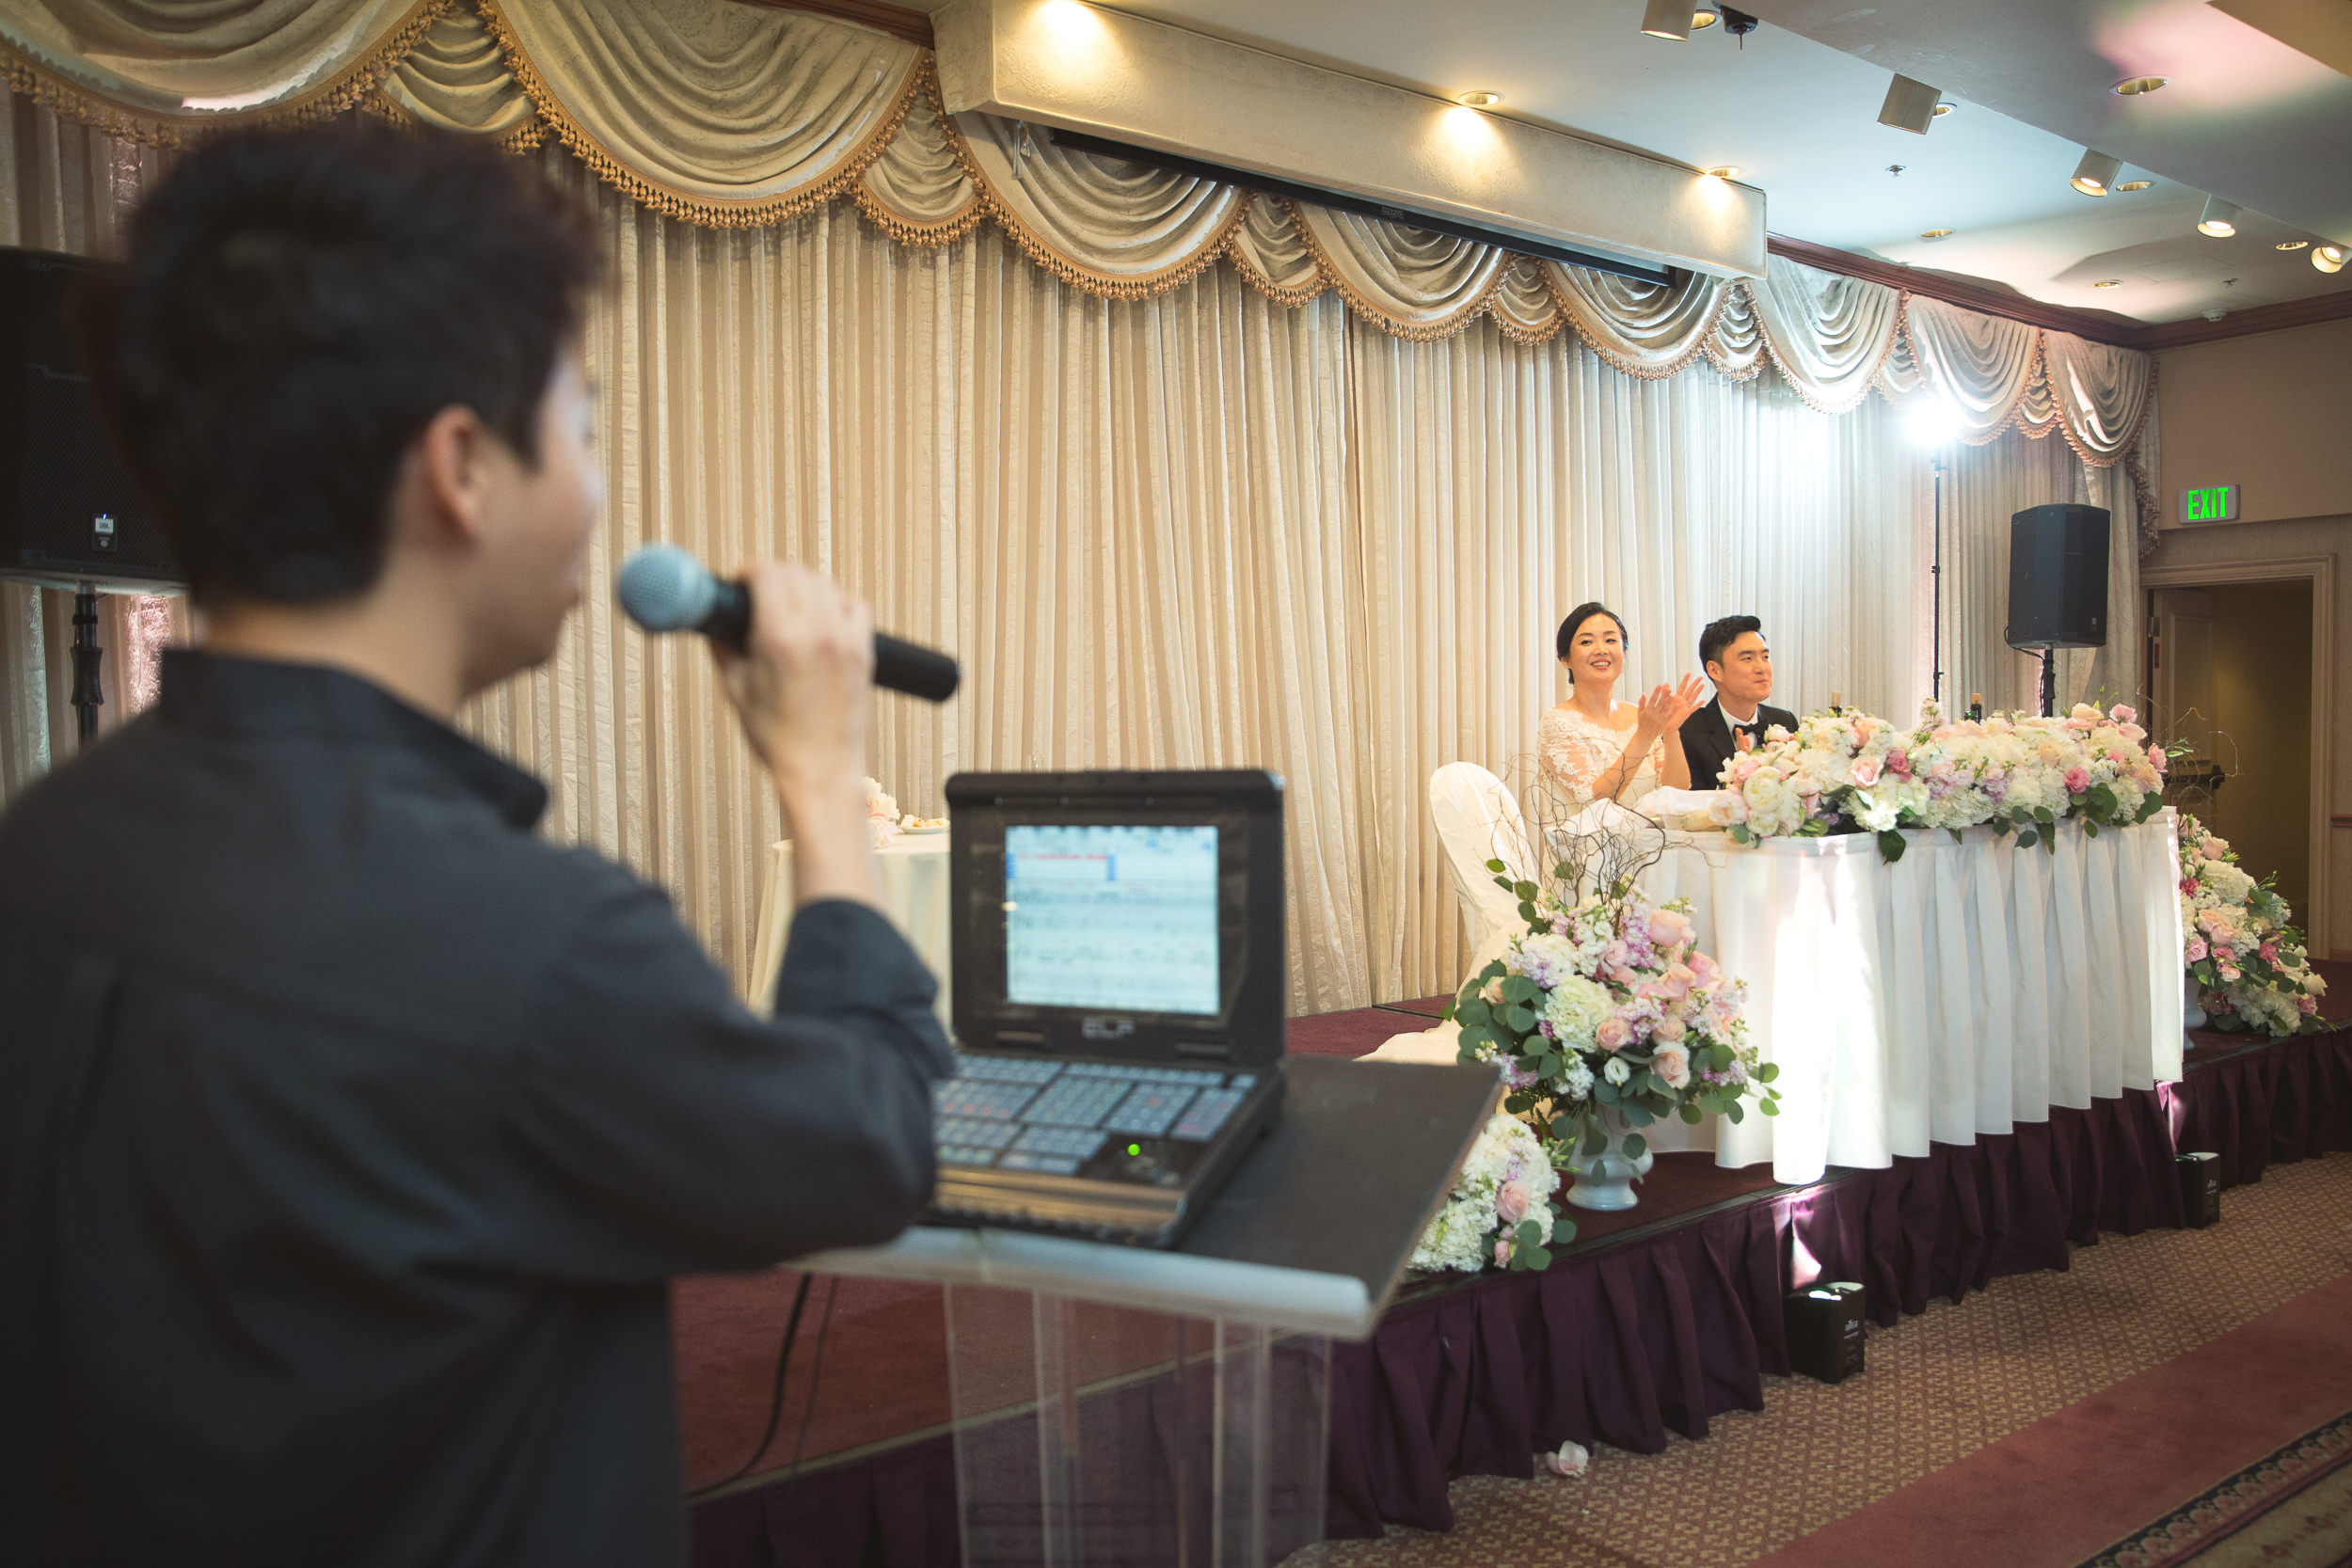 80_Ji Young Choi & Kyungmin Song Wedding